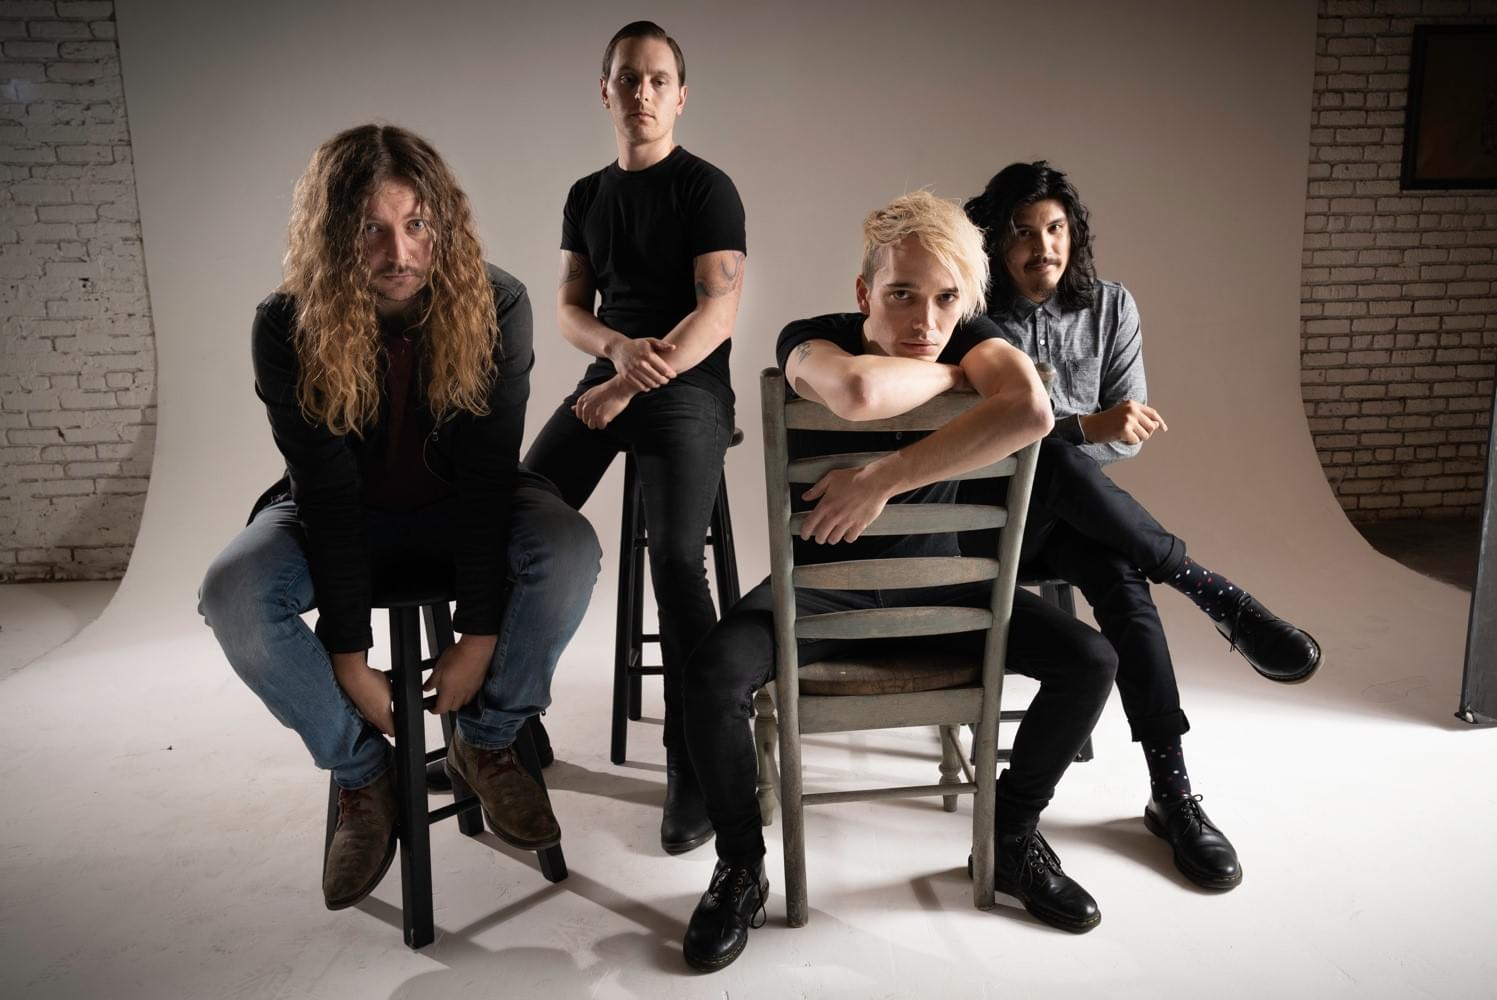 (LISTEN) Nikki chats with Badflower after their set at KAABOO